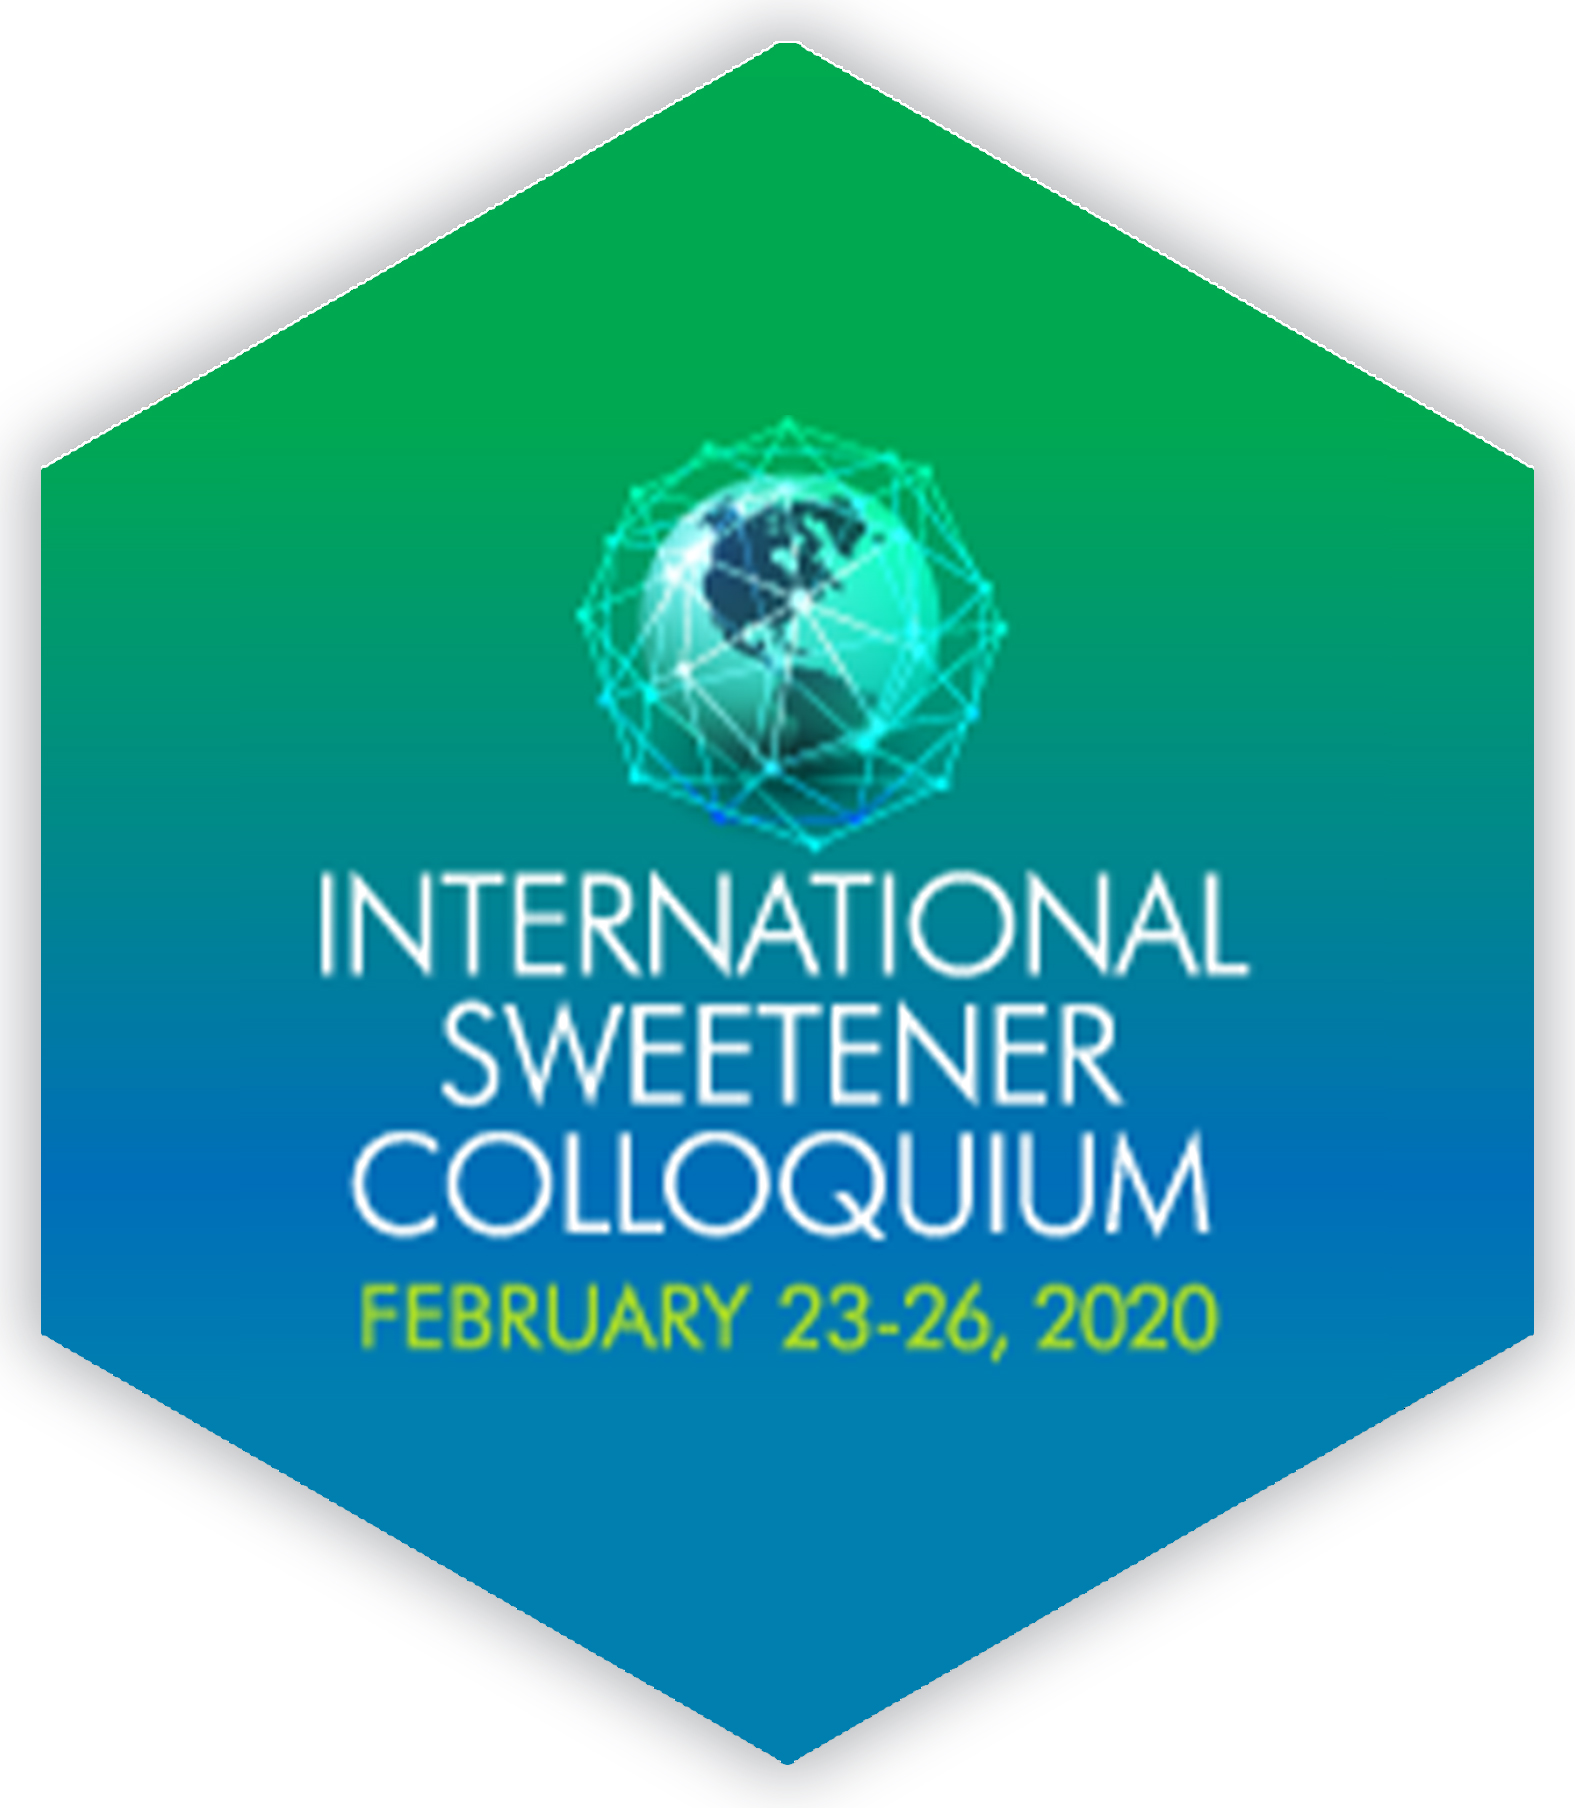 International Sweetener Colloquium 2020